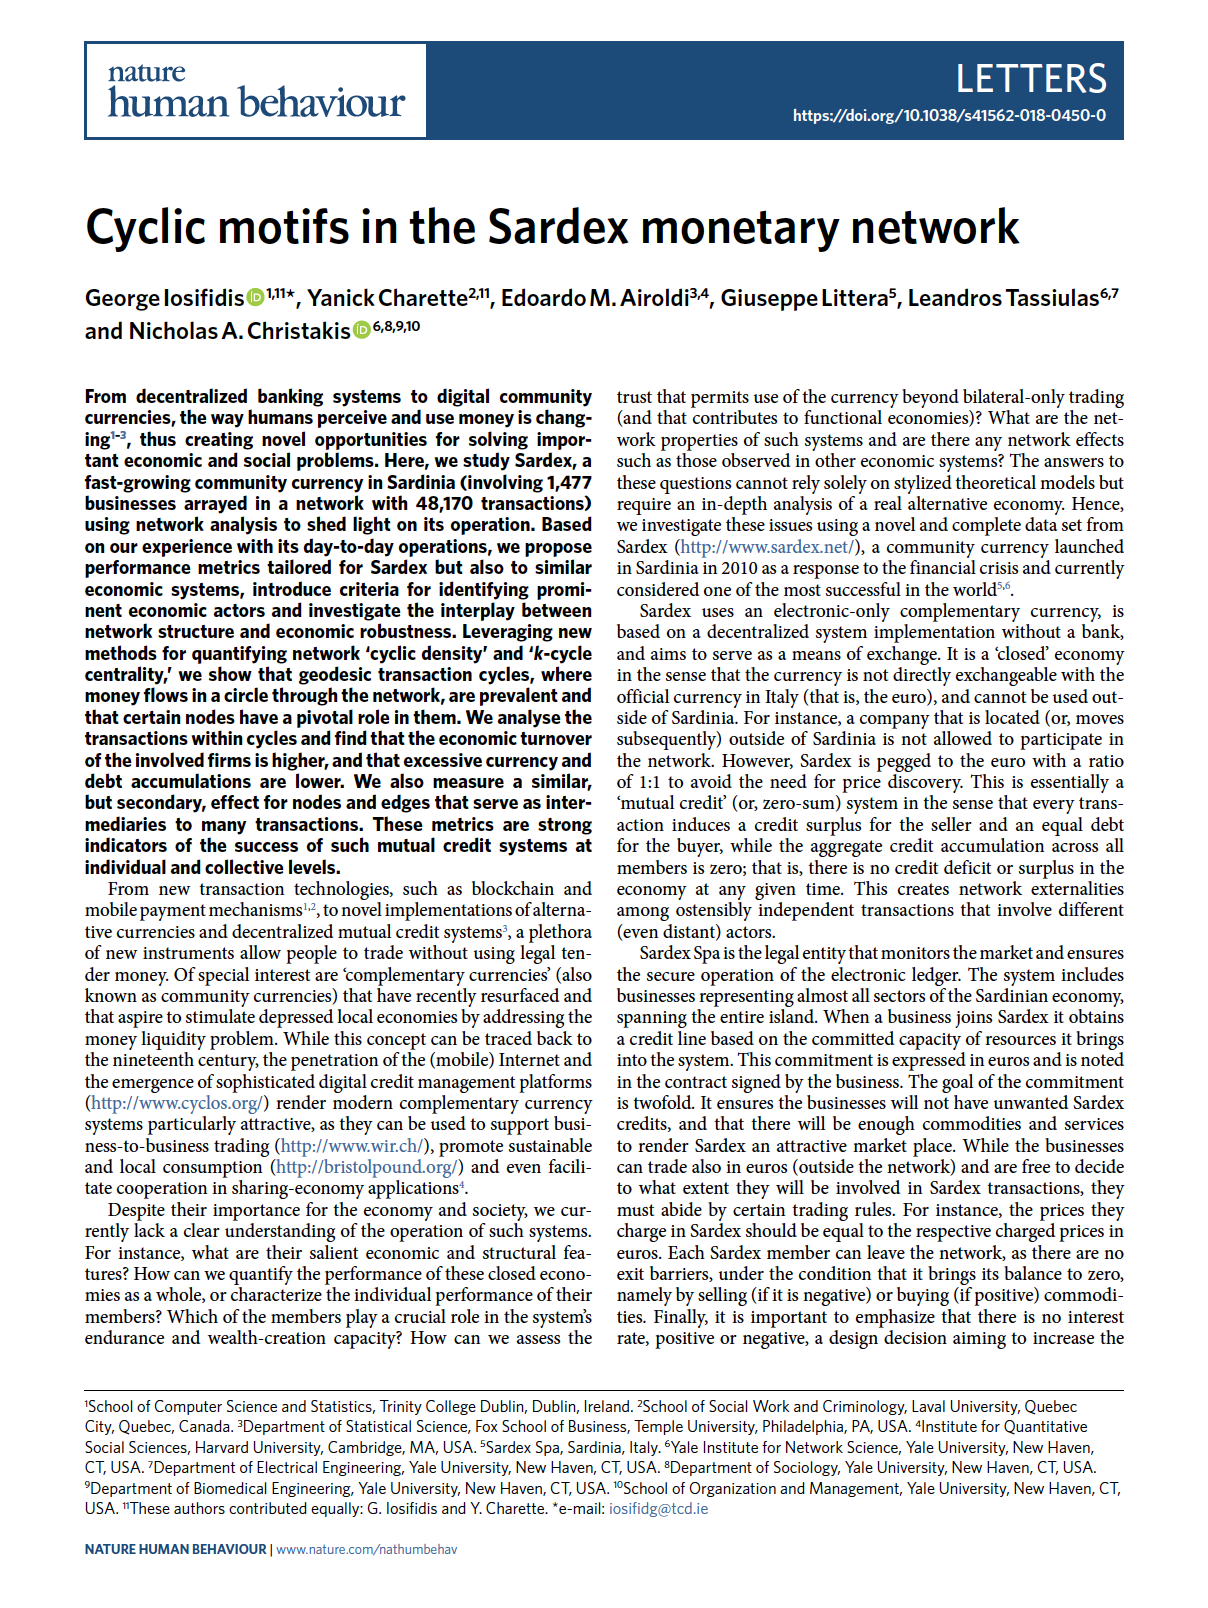 Cyclic Motifs In The Sardex Monetary Network